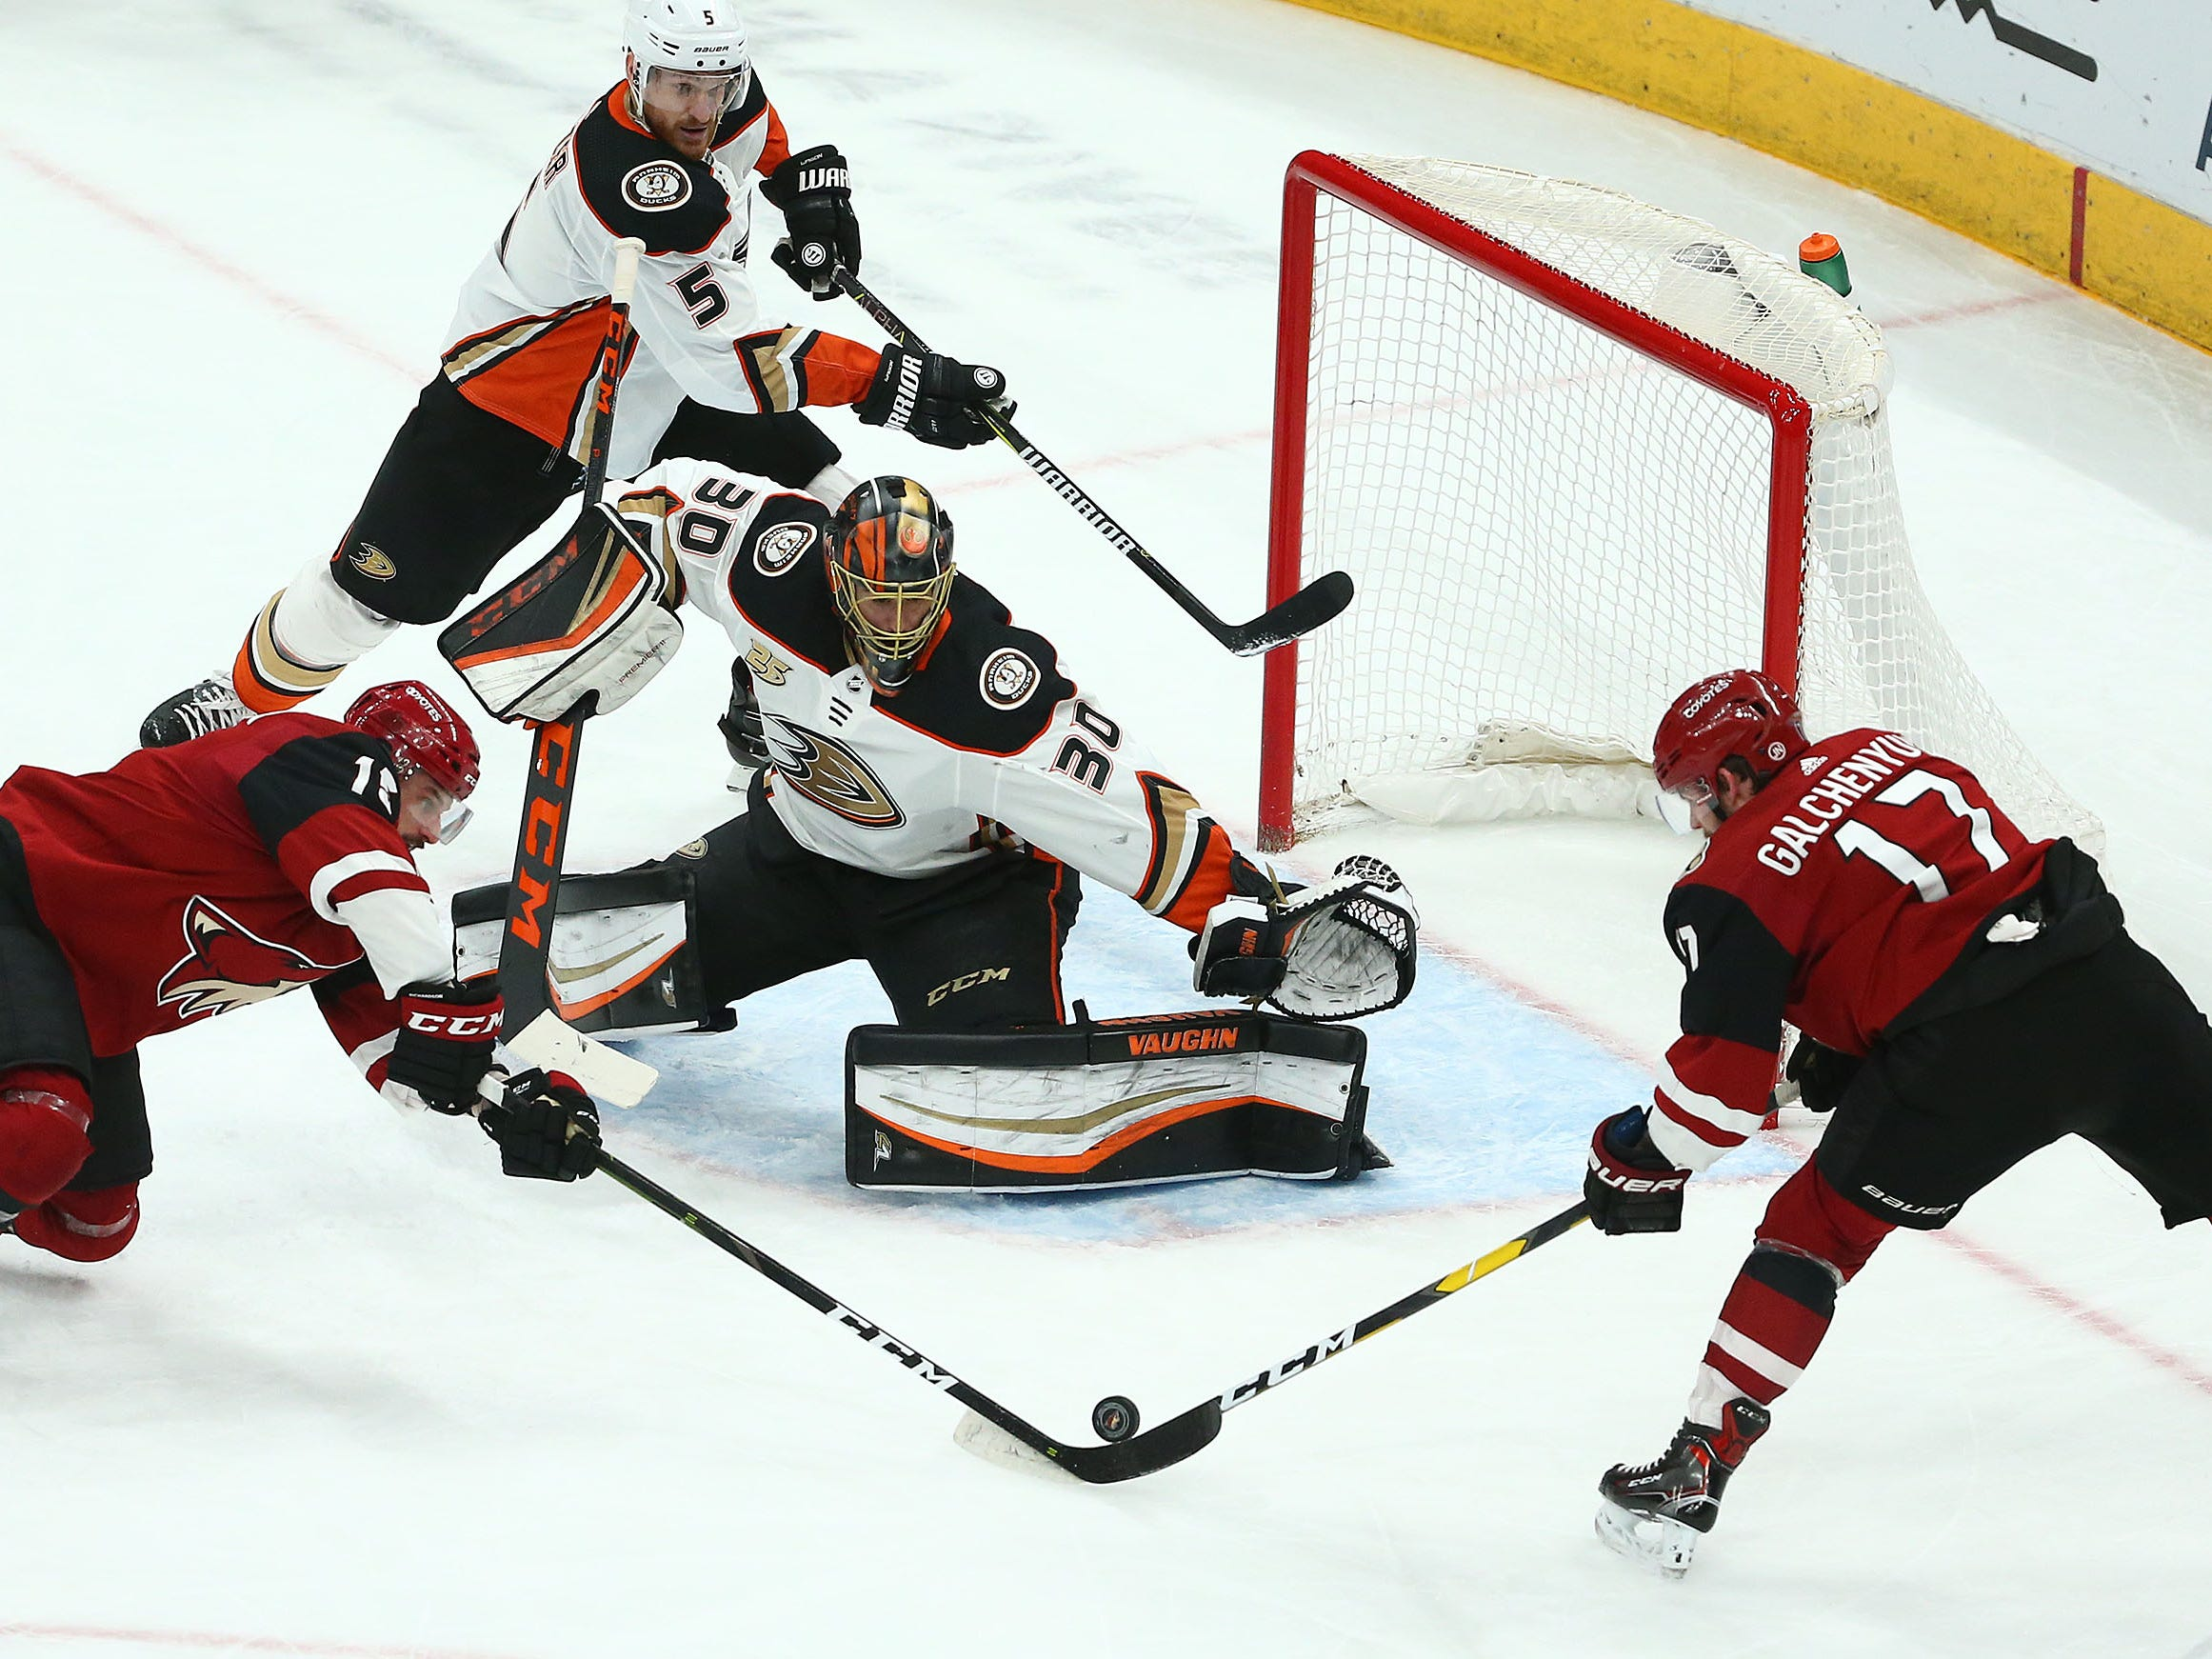 Arizona Coyotes center Alex Galchenyuk (17) shots and misses against Anaheim Ducks goaltender Ryan Miller (30) in the first period on Mar. 5, 2019, at Gila River Arena in Glendale, Ariz.